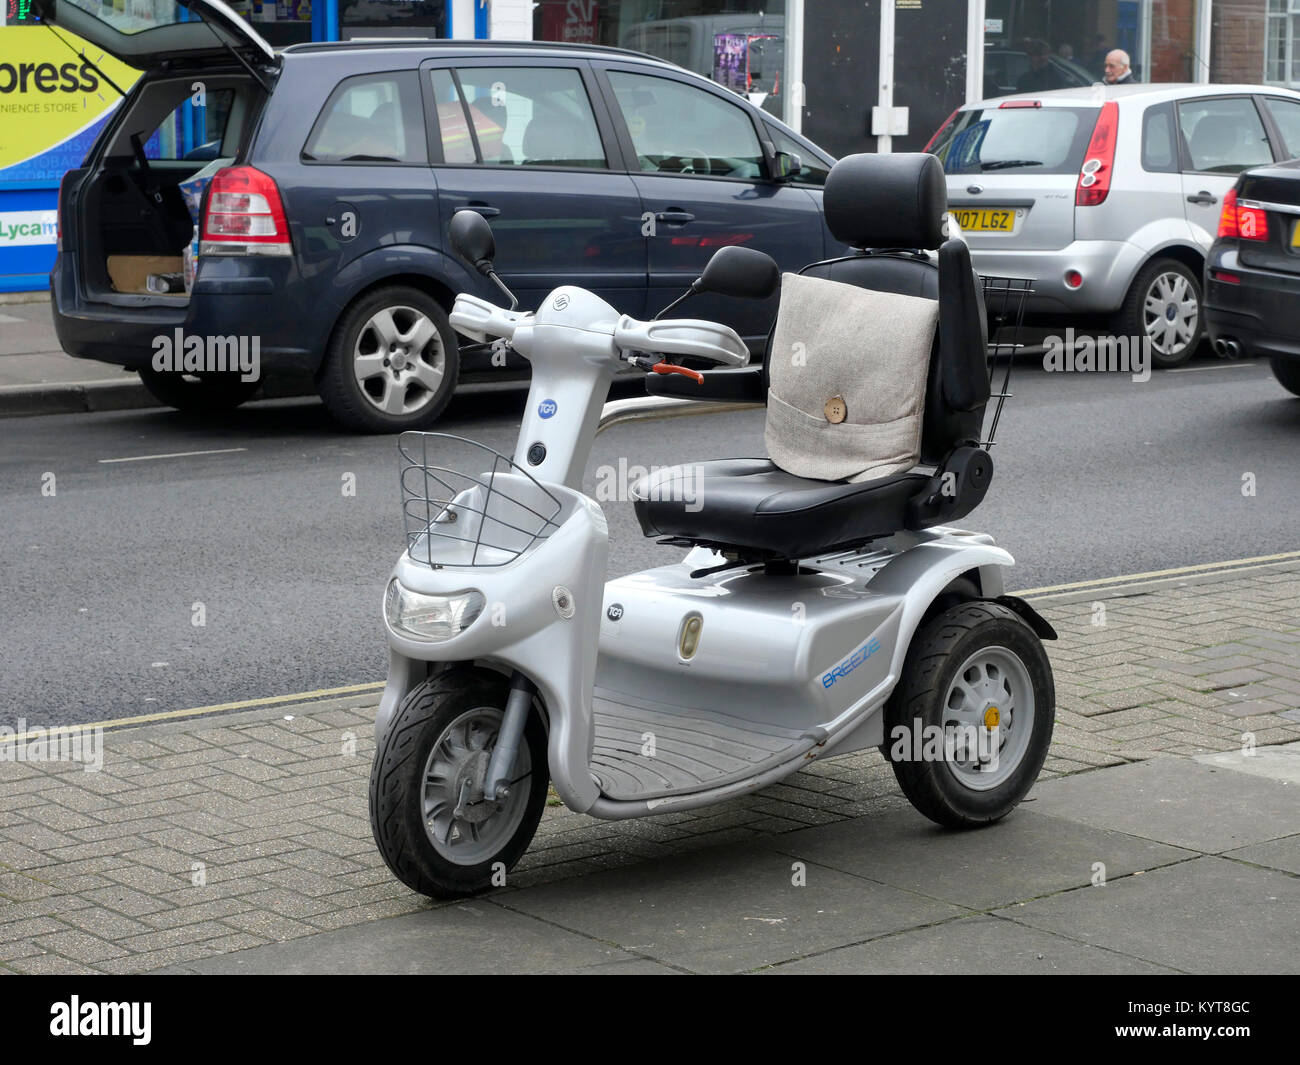 Electric mobility scooter in High Street, Cosham, Hampshire, England, UK Stock Photo